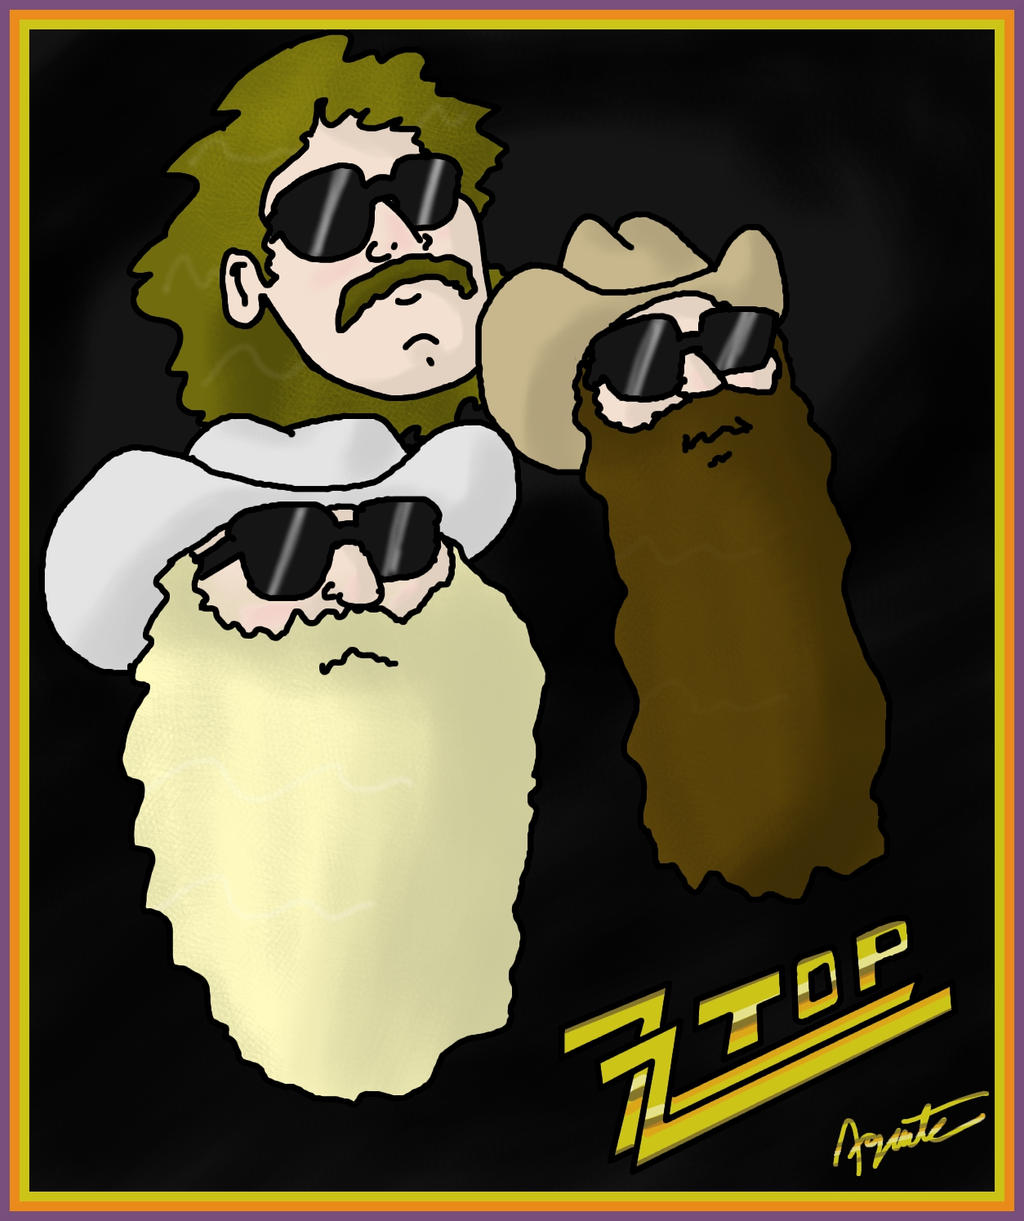 Zz Top Tour Manager